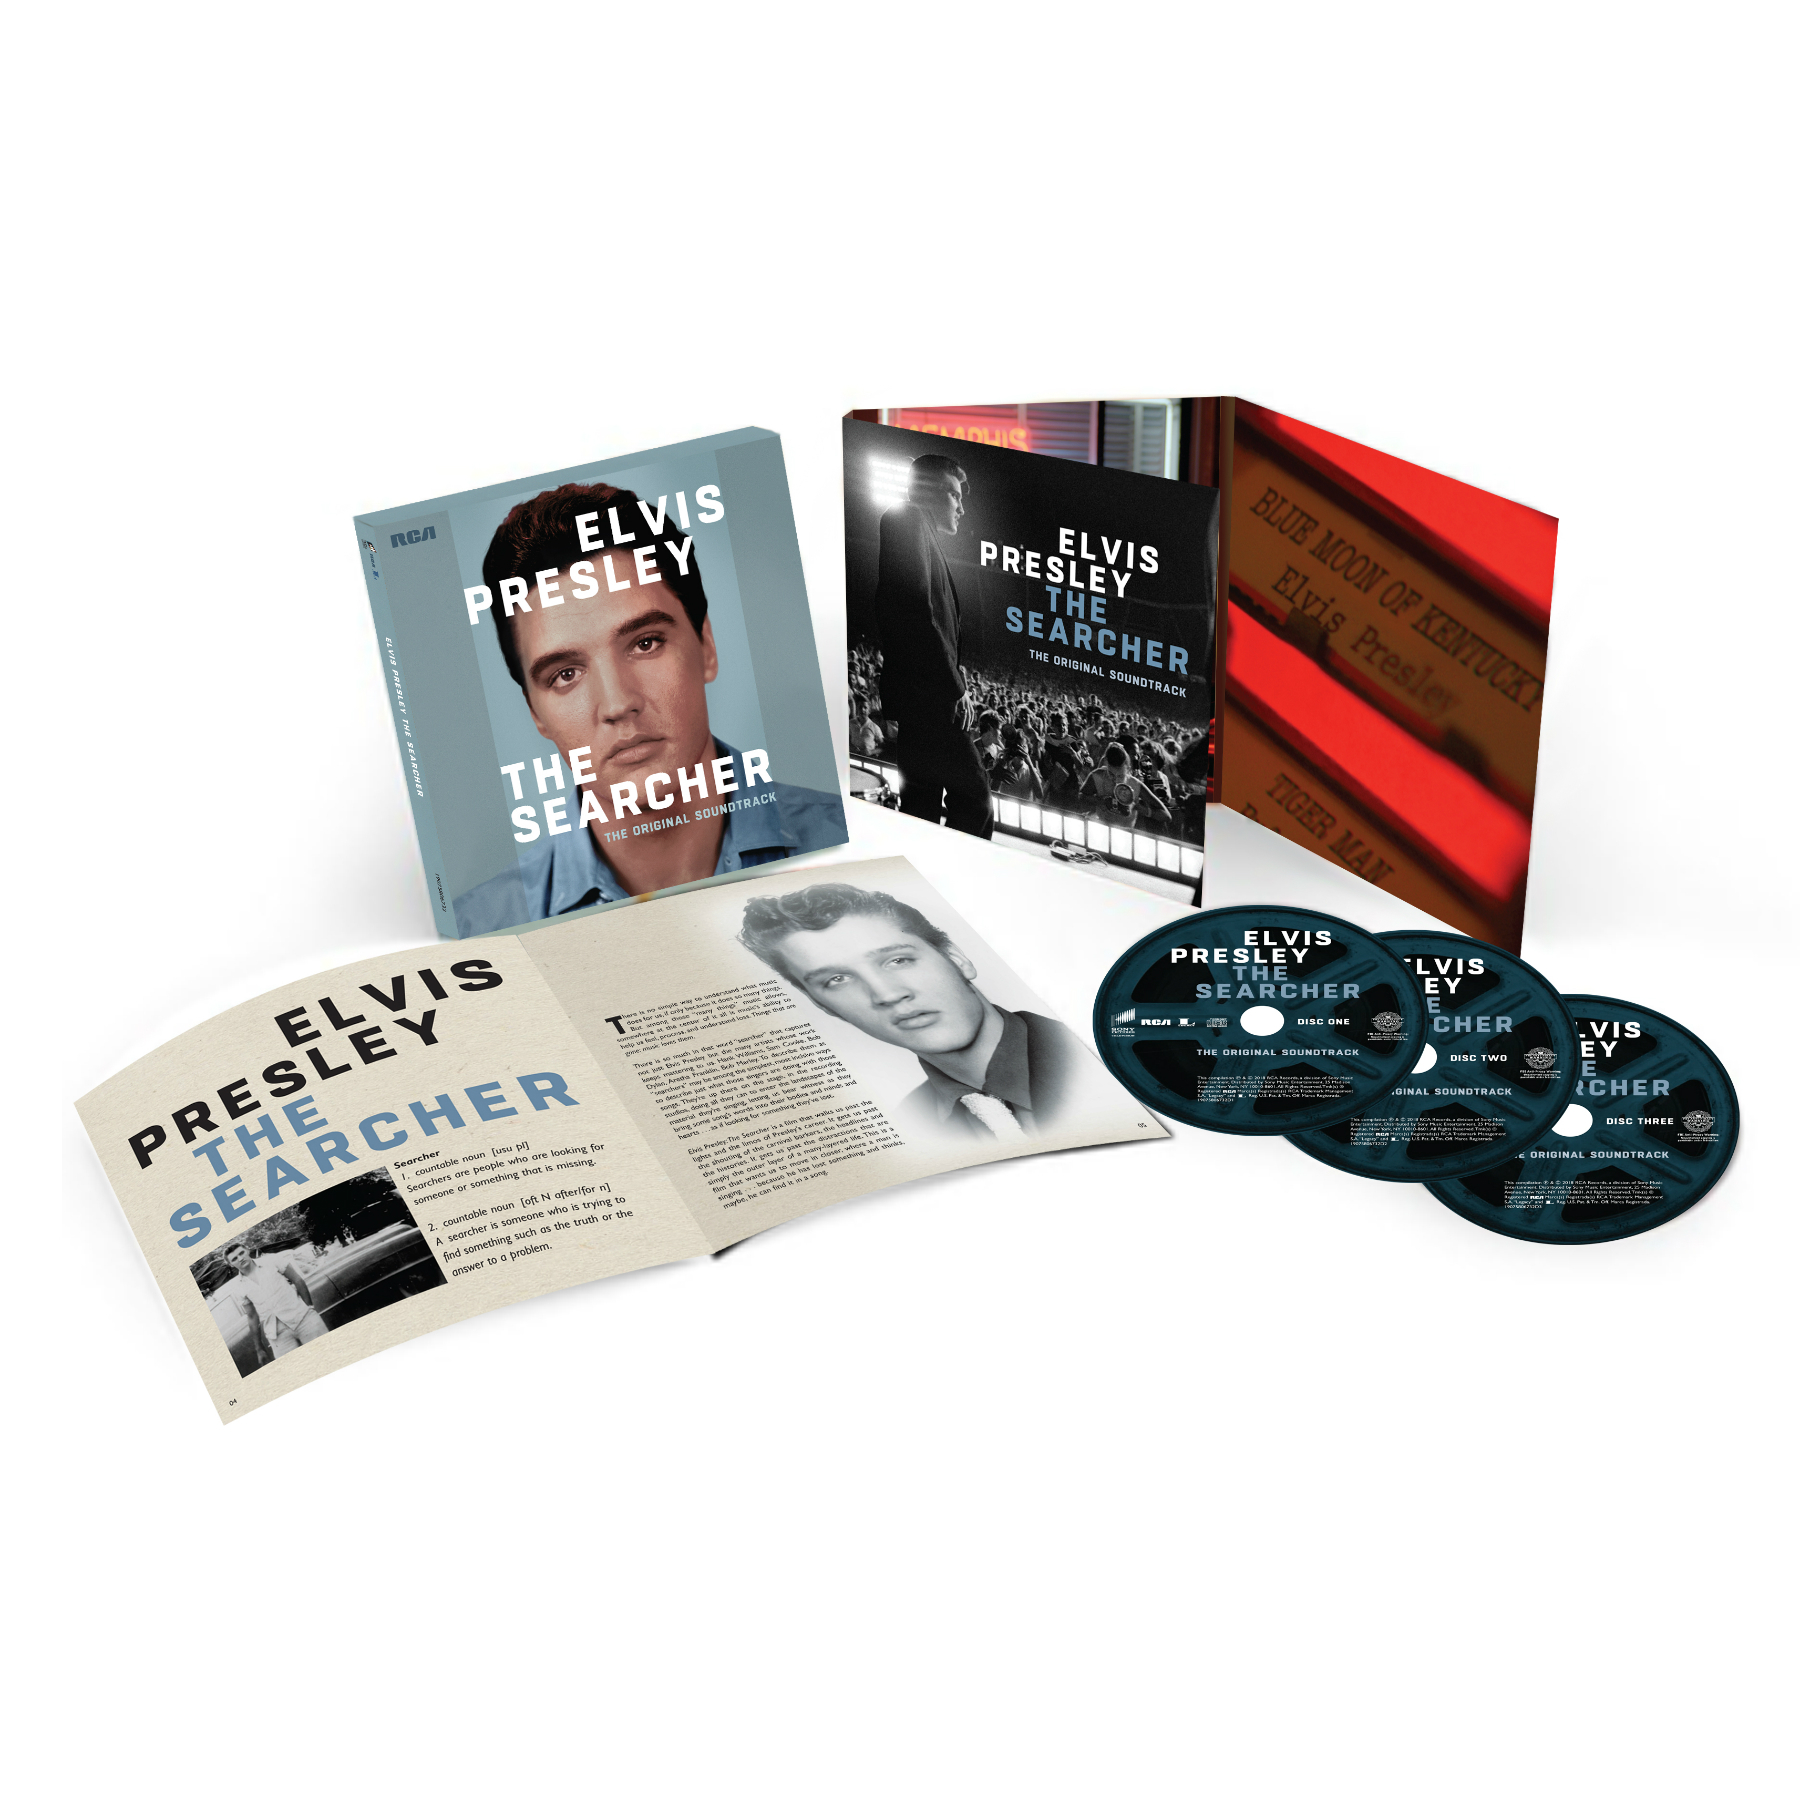 Elvis Presley: The Searcher (The Original Soundtrack) Deluxe 3-Disc CD